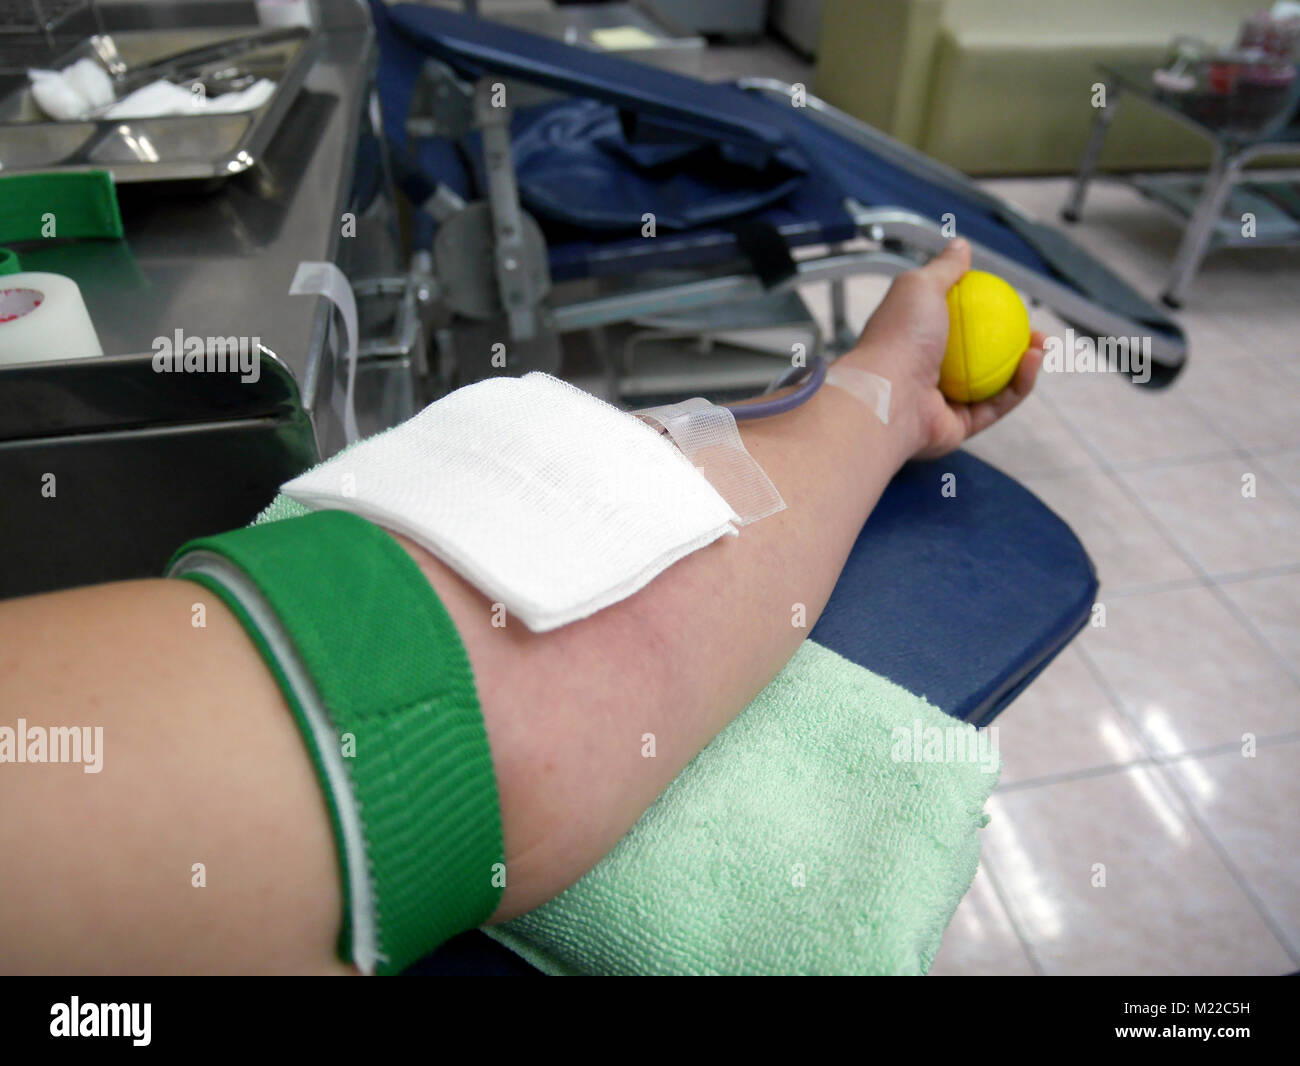 Arm of blood doner during blood donation with arm strap squeezing yellow ball to get easier and faster blood flow - Stock Image